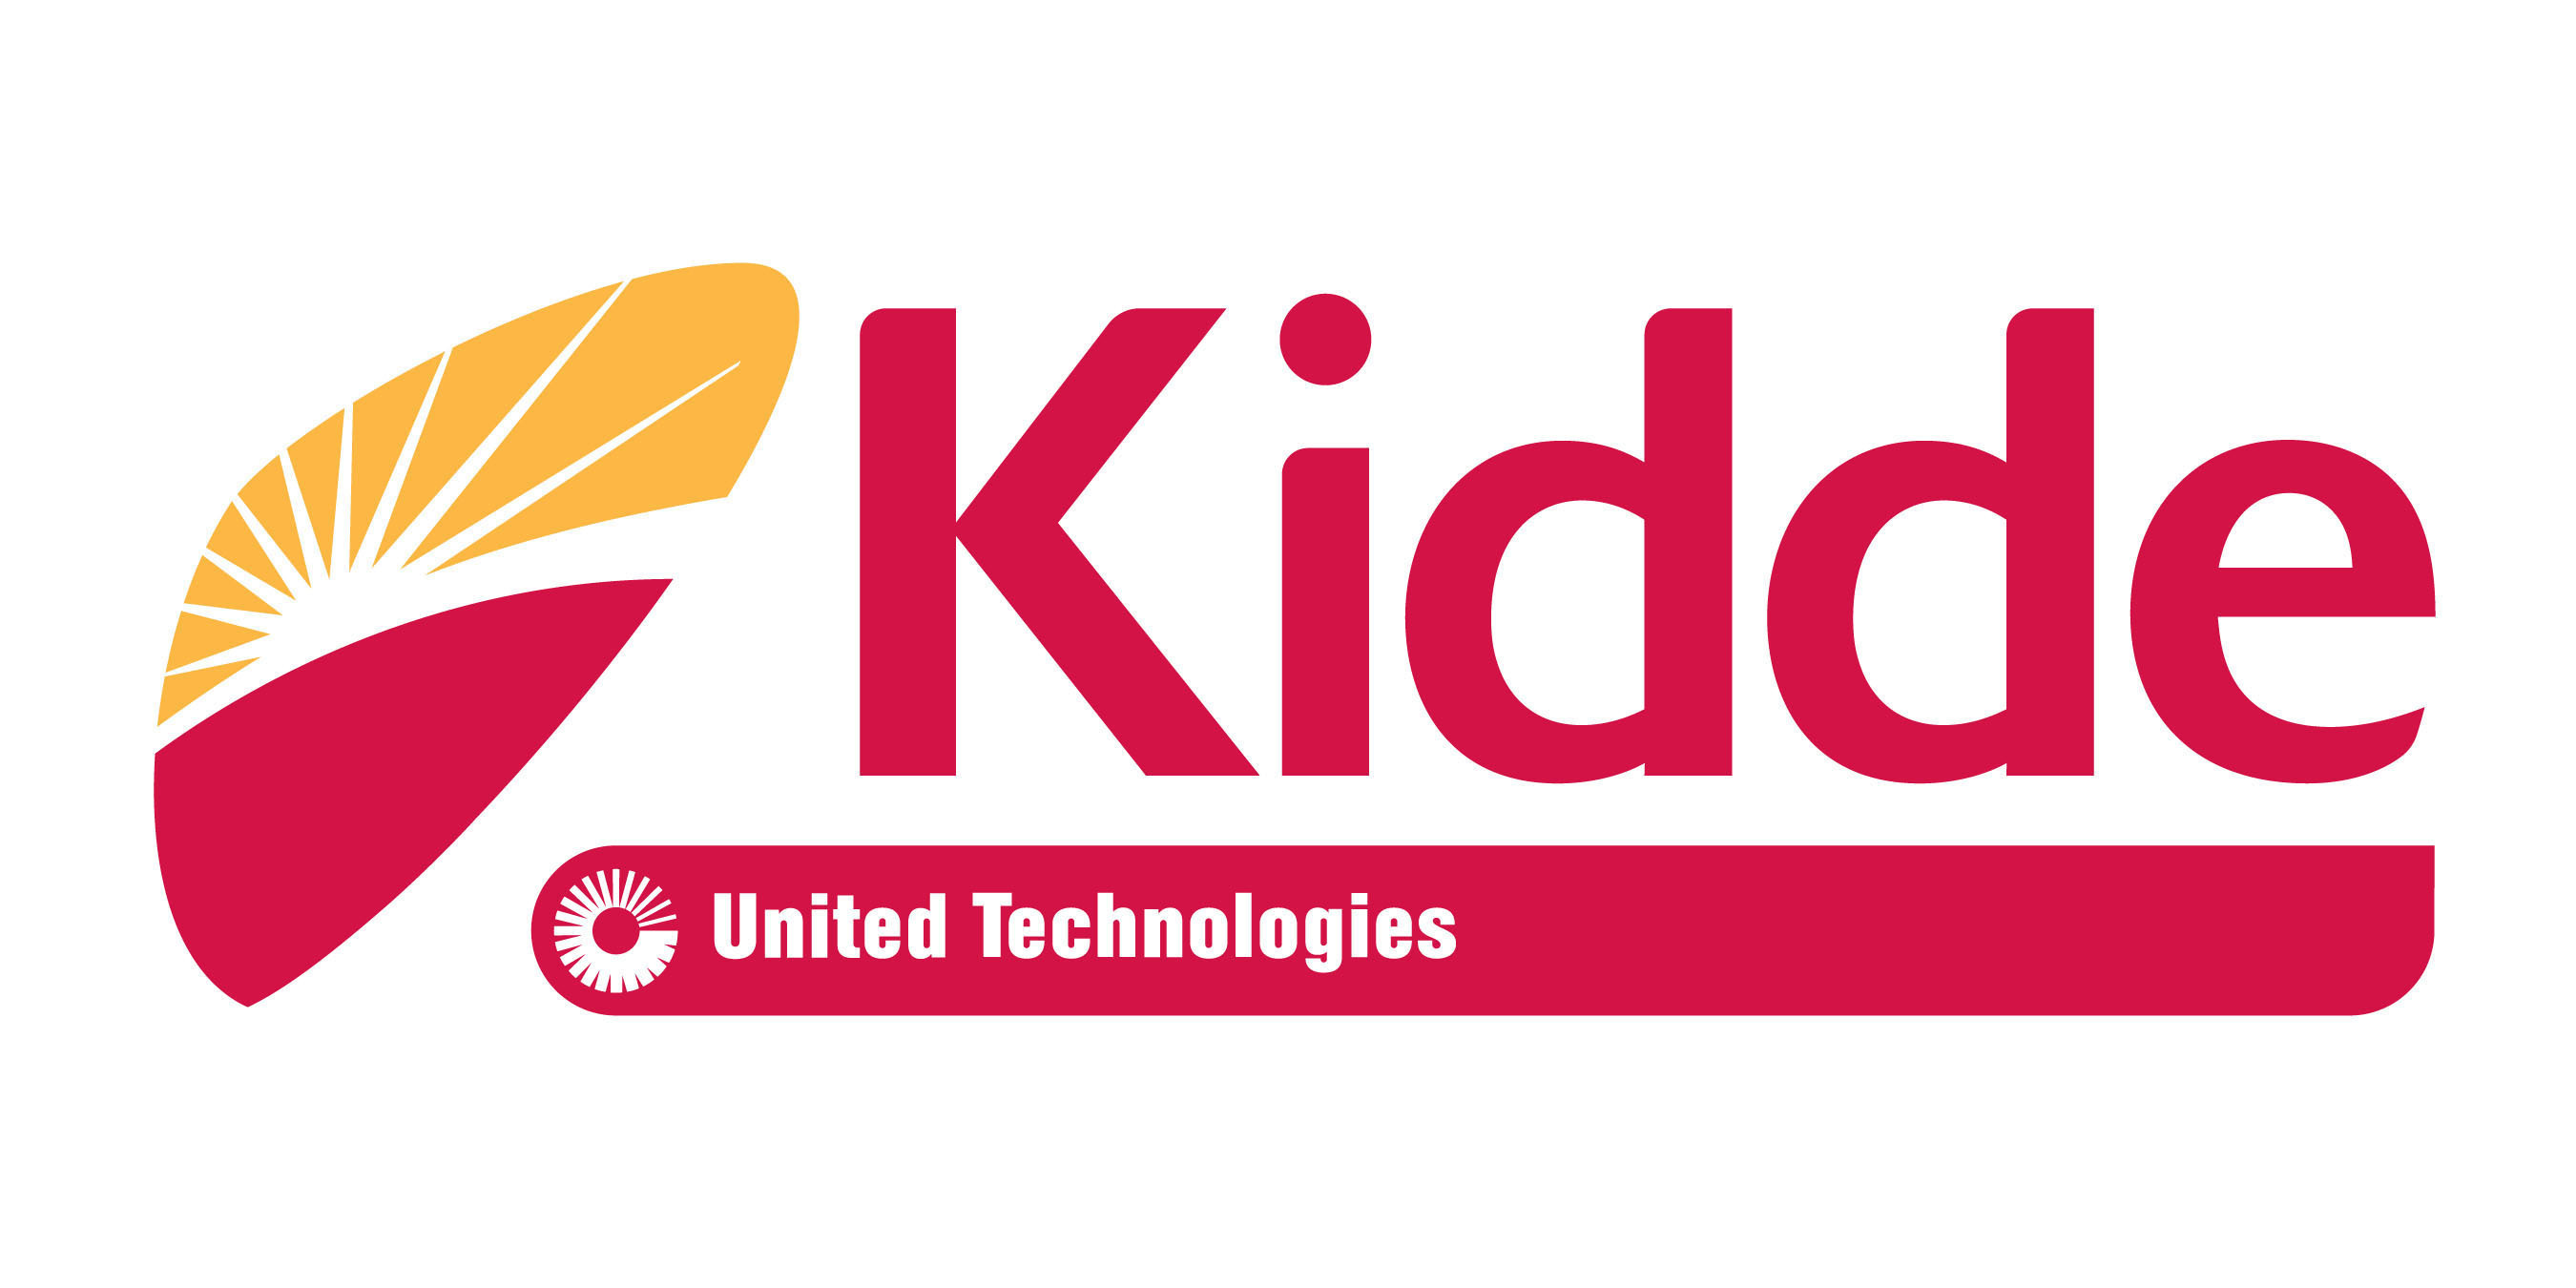 As the world's largest manufacturer of residential fire safety products, Kidde's mission is to provide ...